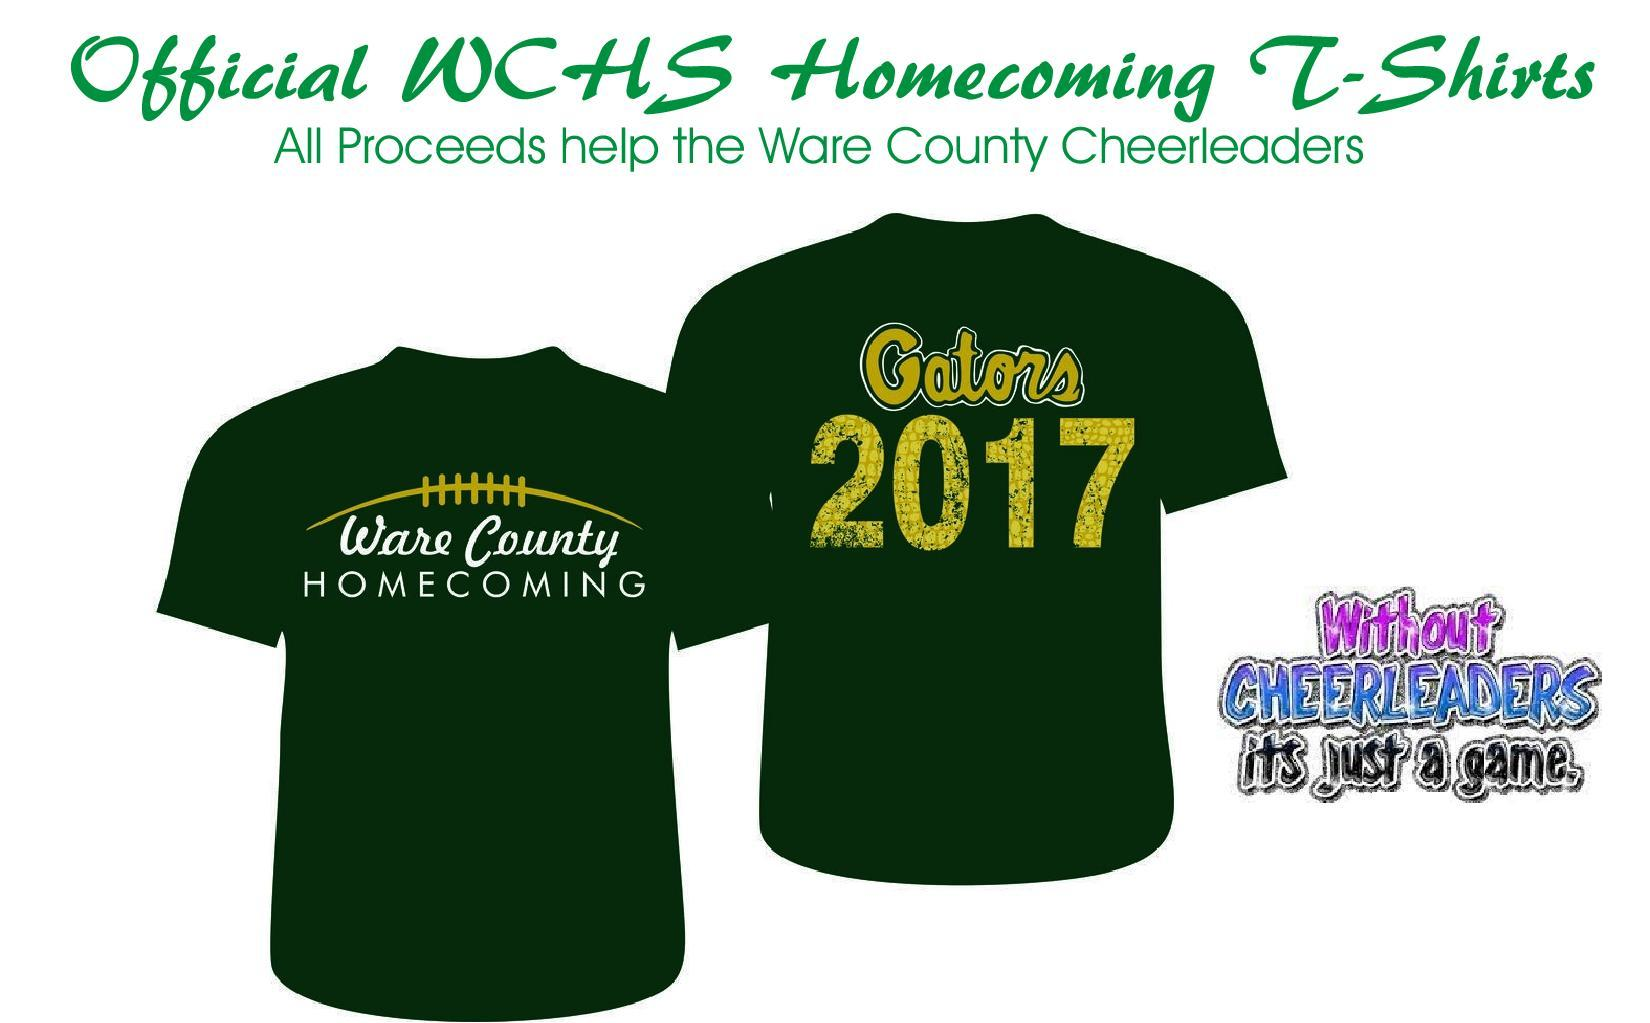 Cheerleaders Offering Homecoming T Shirts